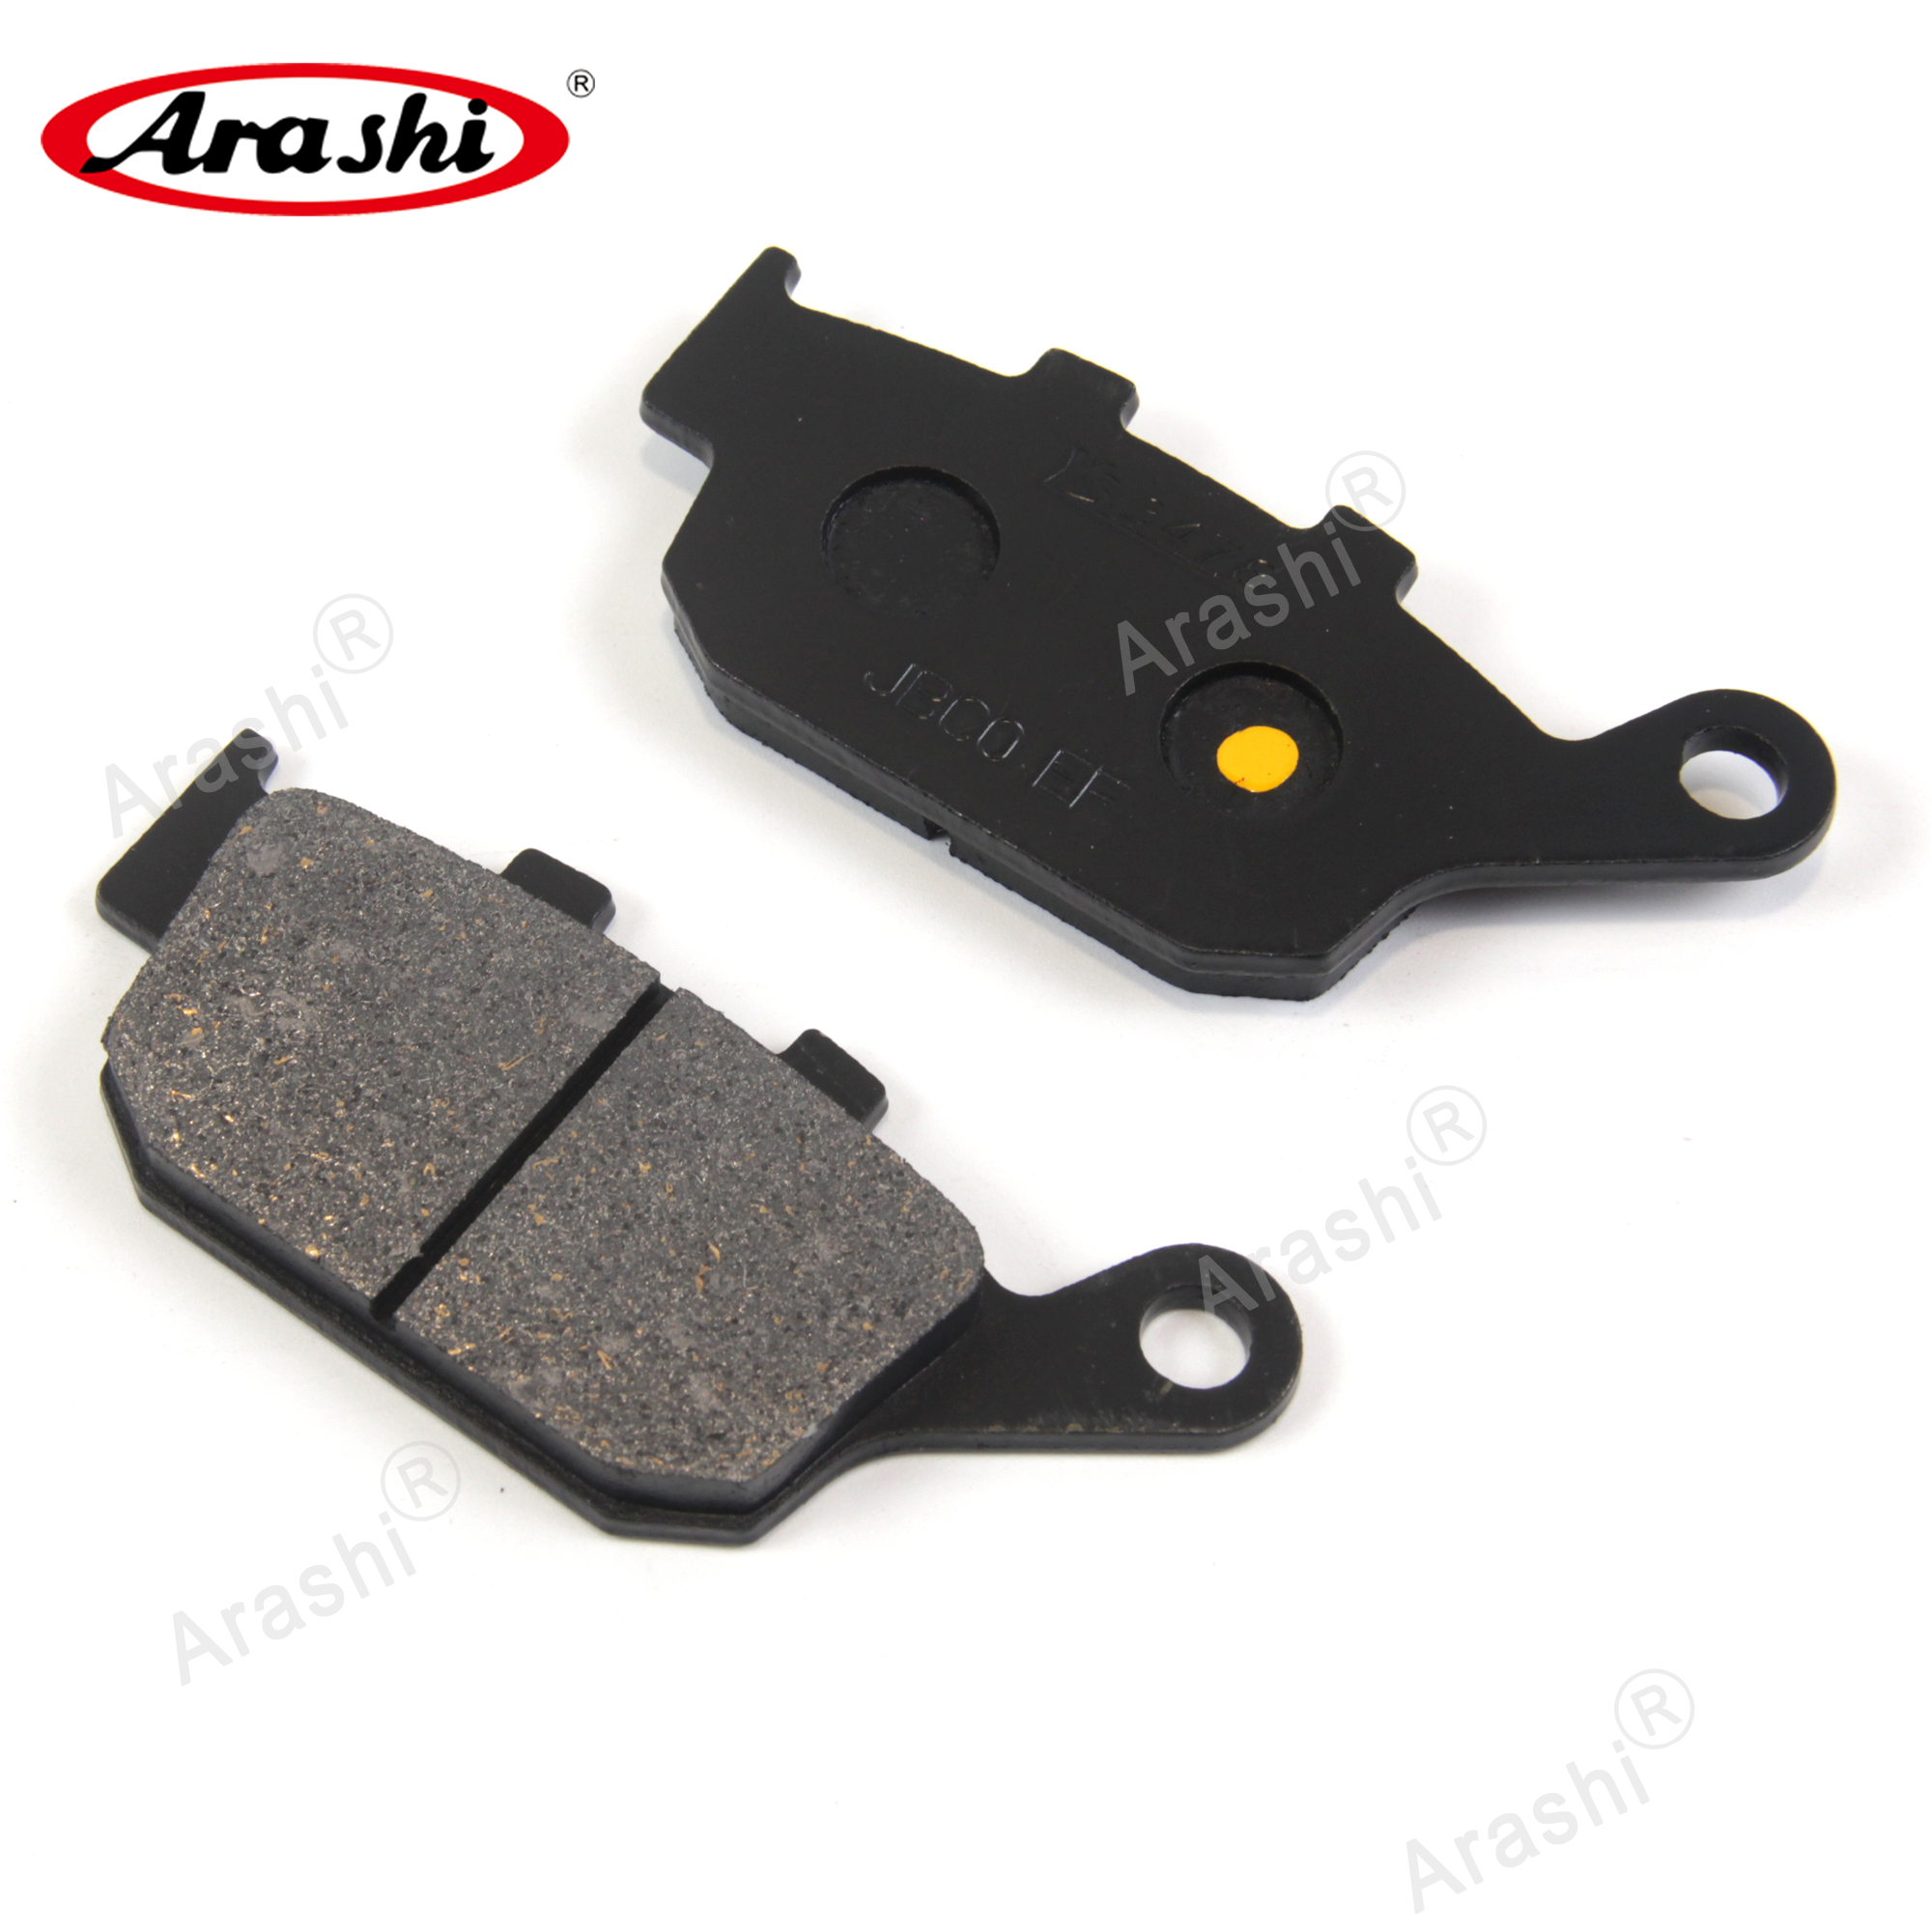 Arashi Rear Brake Pads For <font><b>HONDA</b></font> <font><b>XL</b></font> <font><b>650</b></font> V <font><b>Transalp</b></font> 2000 - 2007 Motorcycle Discs Rotors Pad XL650V 2001 2002 2003 2004 2005 2006 image